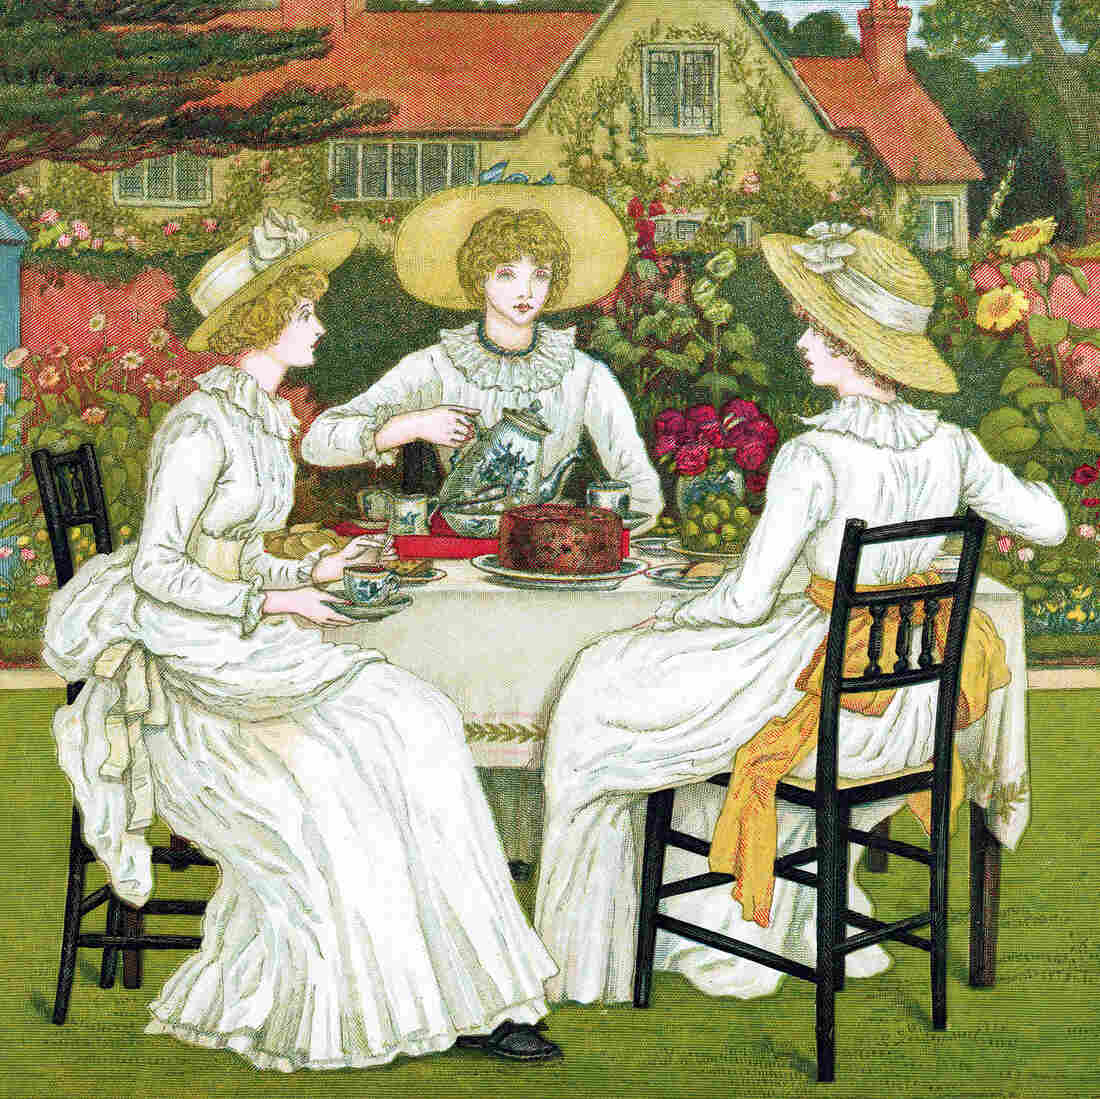 Afternoon Tea, 1886. Chromolithograph after Kate Greenaway. If you're looking for finger sandwiches, dainty desserts and formality, afternoon tea is your cup.